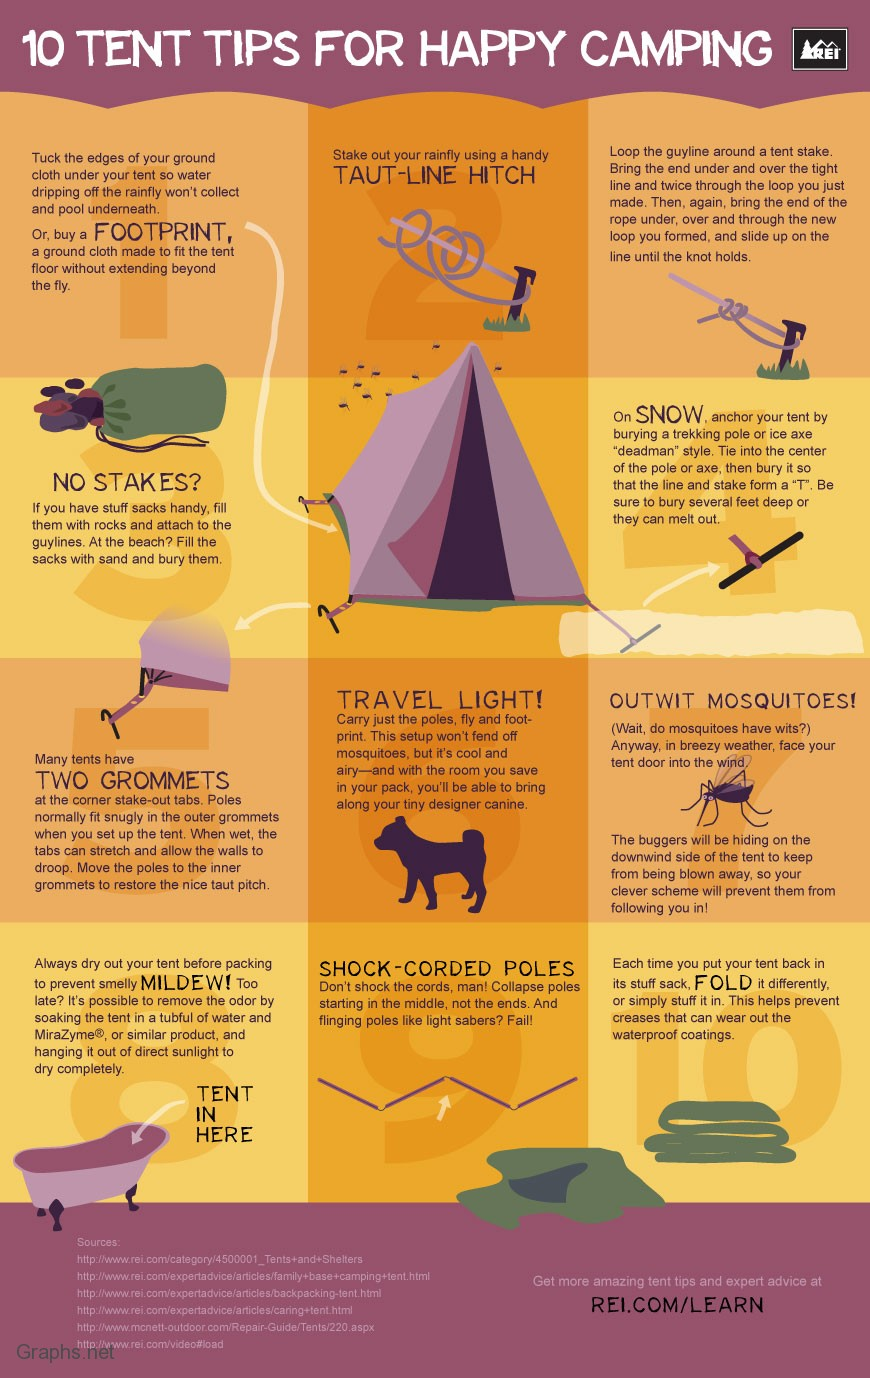 10 Useful Tent Tips For Camping